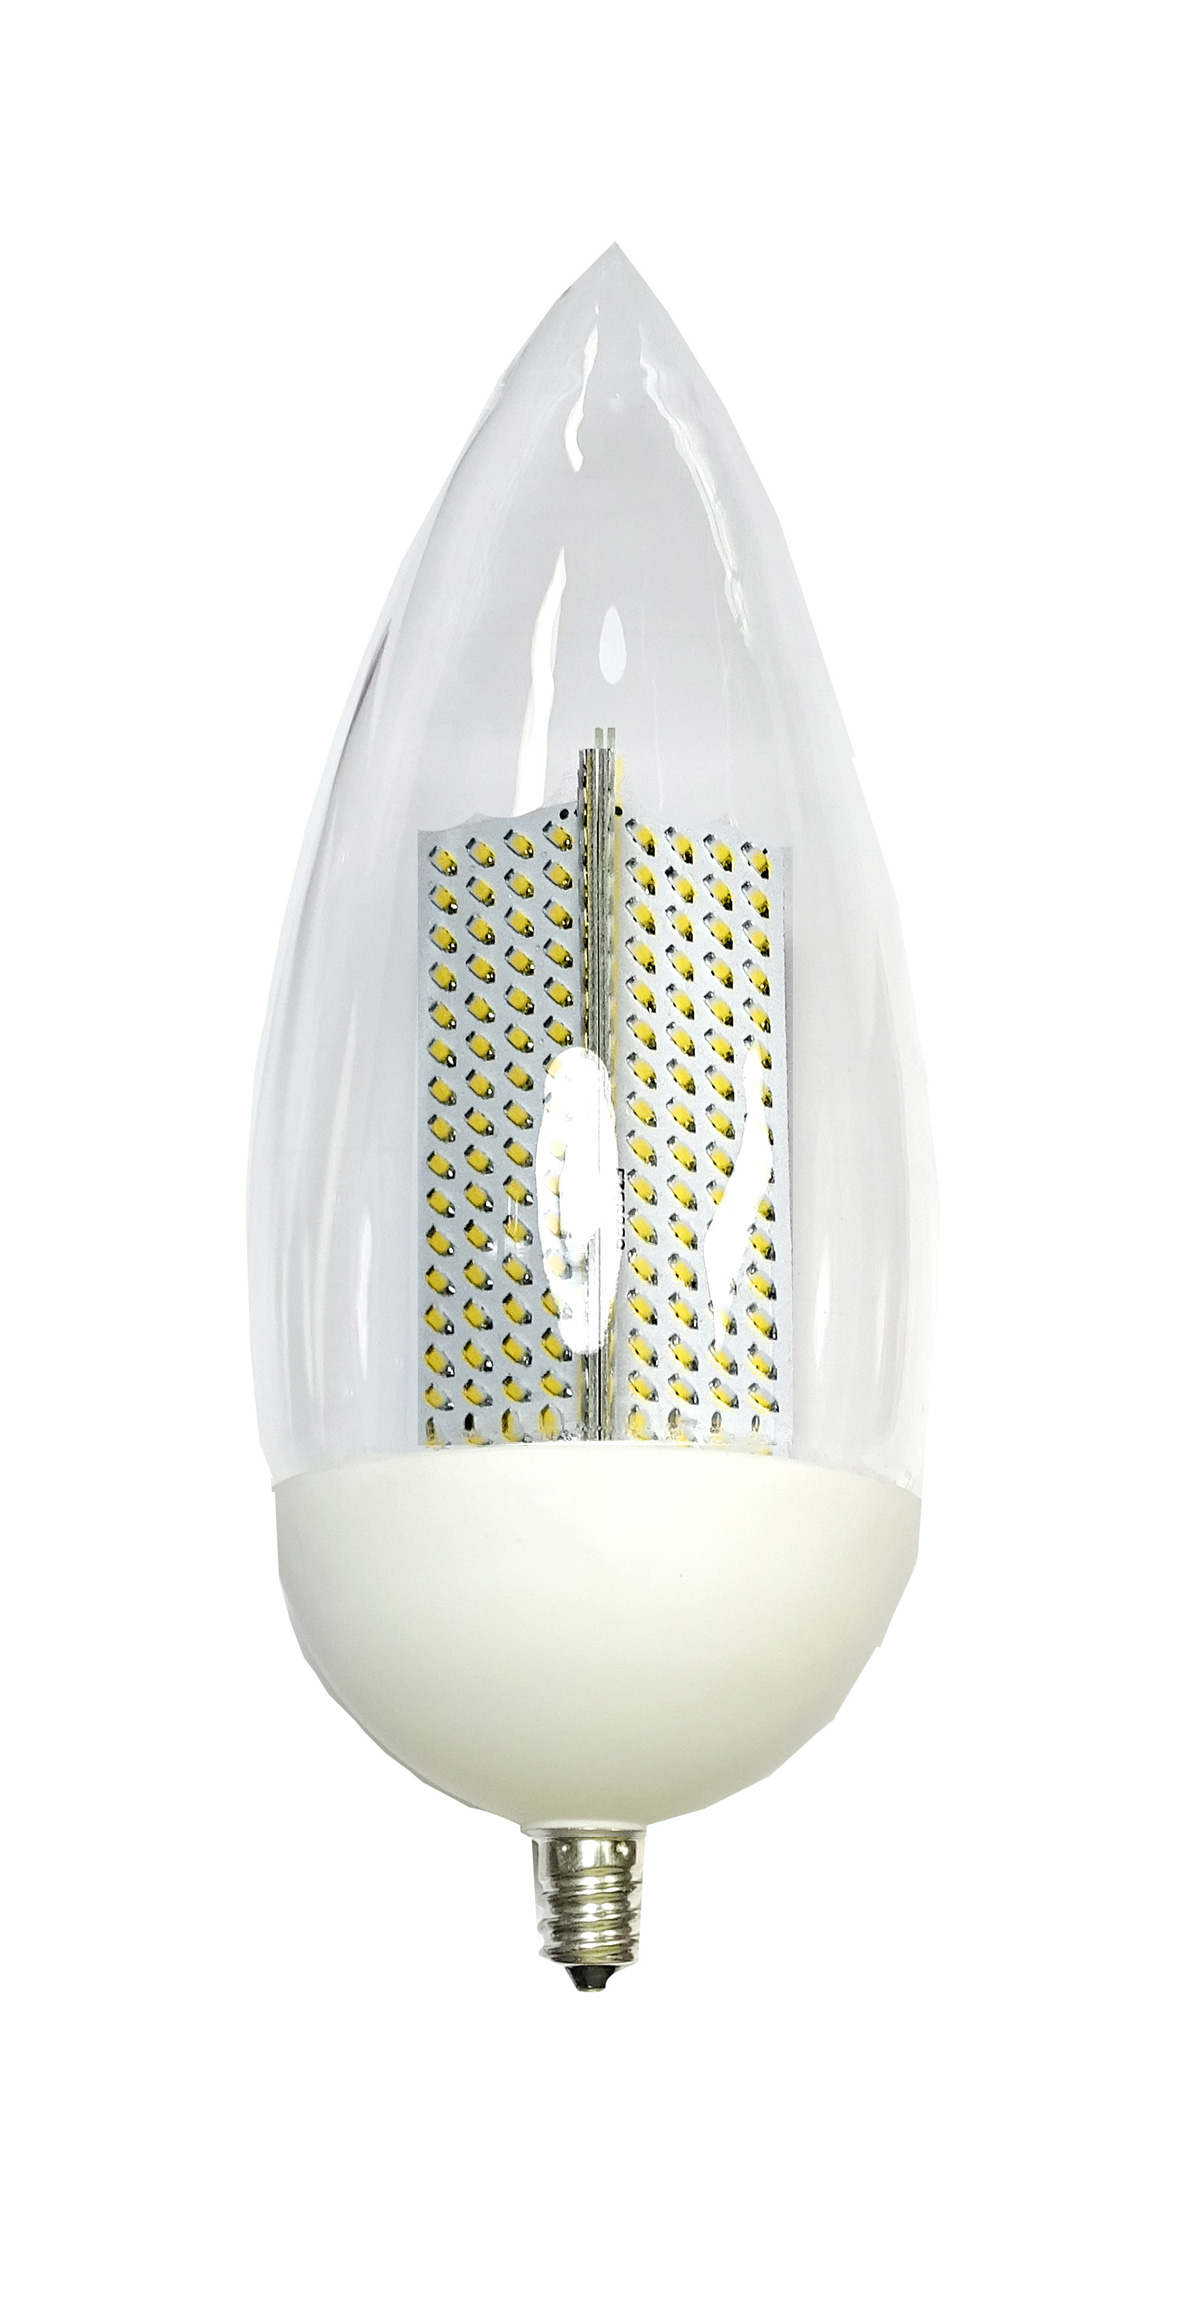 Flamebulb With Yellow Flame Or Platinum White Flame Led